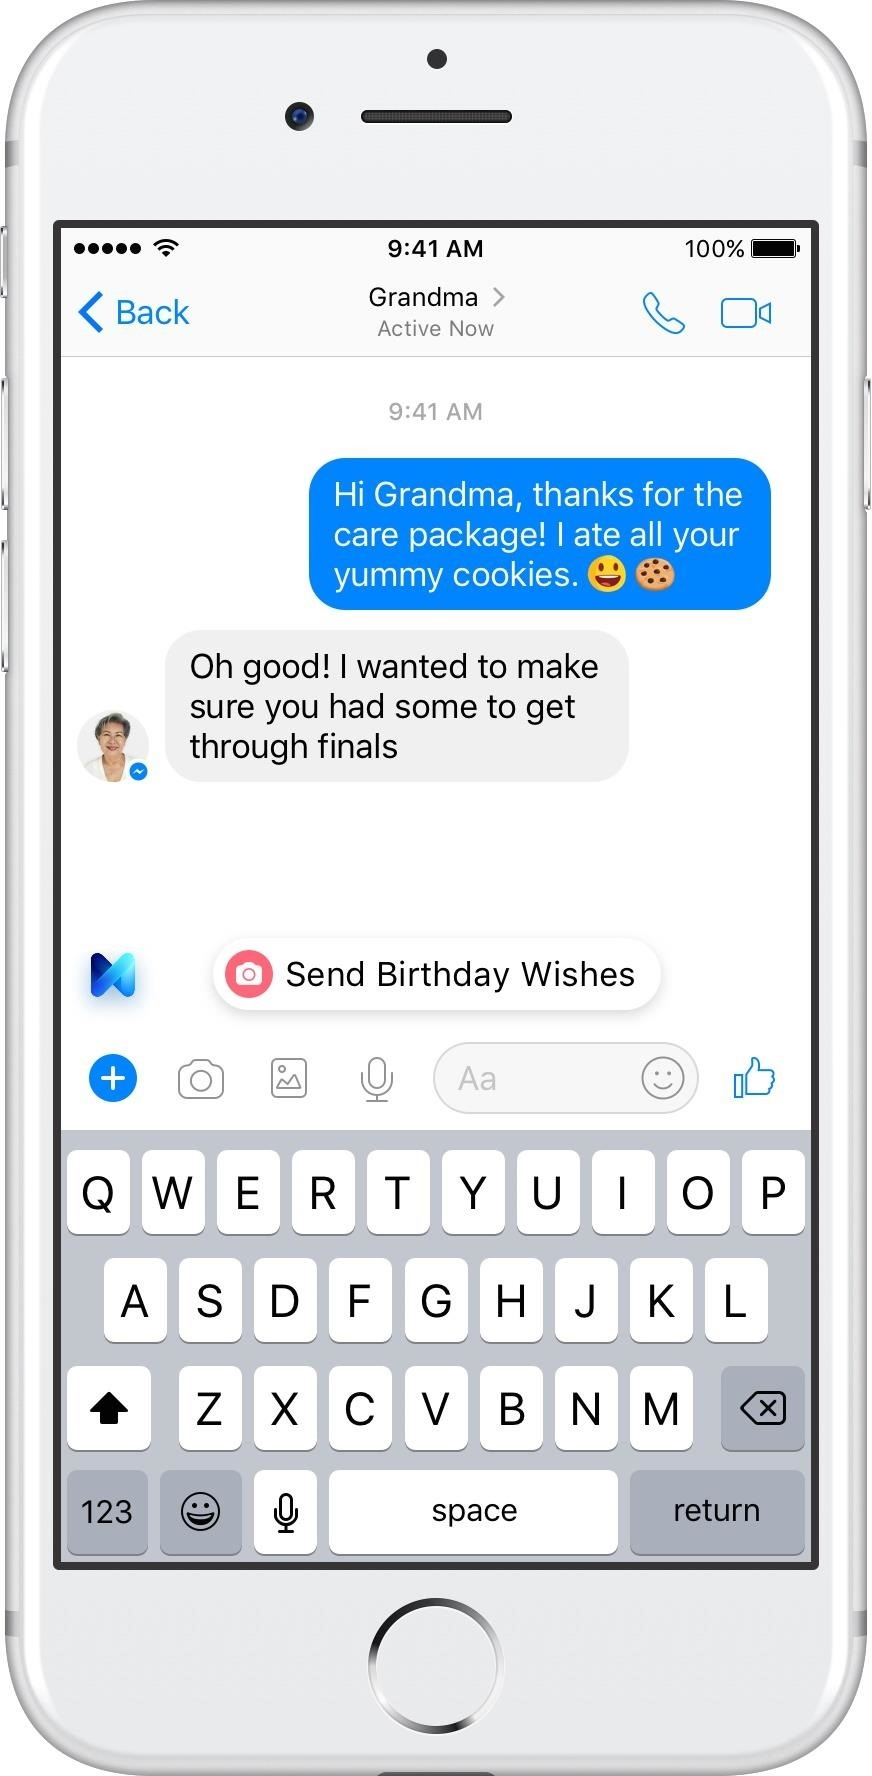 Facebook's AI-Powered Assistant Just Keeps Getting Better with Latest Update